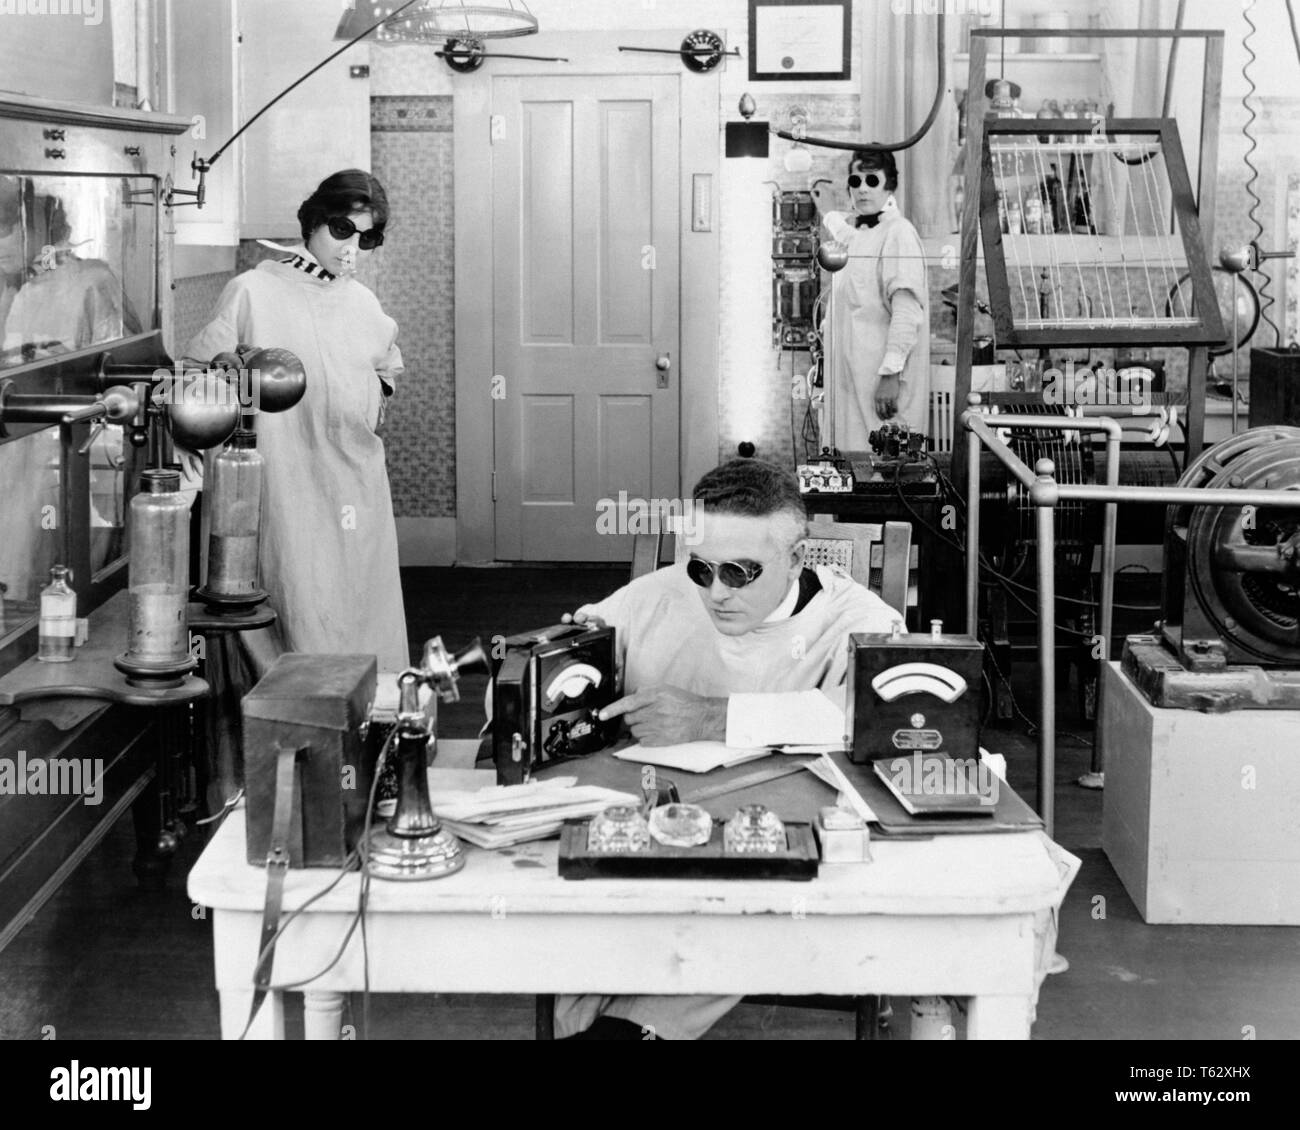 1920s THREE MAD SCIENTISTS WORKING EXPERIMENTING INVENTING IN ELECTRONICS LABORATORY ALL WEARING DARK GOGGLES & WHITE LAB COATS - kl800280 CAM001 HARS COATS LABORATORY HORIZONTAL COPY SPACE FULL-LENGTH HALF-LENGTH LADIES PERSONS INSPIRATION GOGGLES MALES RISK SCIENTISTS B&W BIZARRE TEMPTATION WEIRD HIGH ANGLE DISCOVERY STRENGTH ELECTRONICS EXCITEMENT POWERFUL CAM001 ZANY UNCONVENTIONAL IN OCCUPATIONS HIGH TECH CONCEPTUAL INVENTION STYLISH IDIOSYNCRATIC SCI-FI AMUSING ECCENTRIC IDEAS INVENTING MID-ADULT MID-ADULT MAN MID-ADULT WOMAN SCIENCE FICTION TOGETHERNESS & BLACK AND WHITE - Stock Image